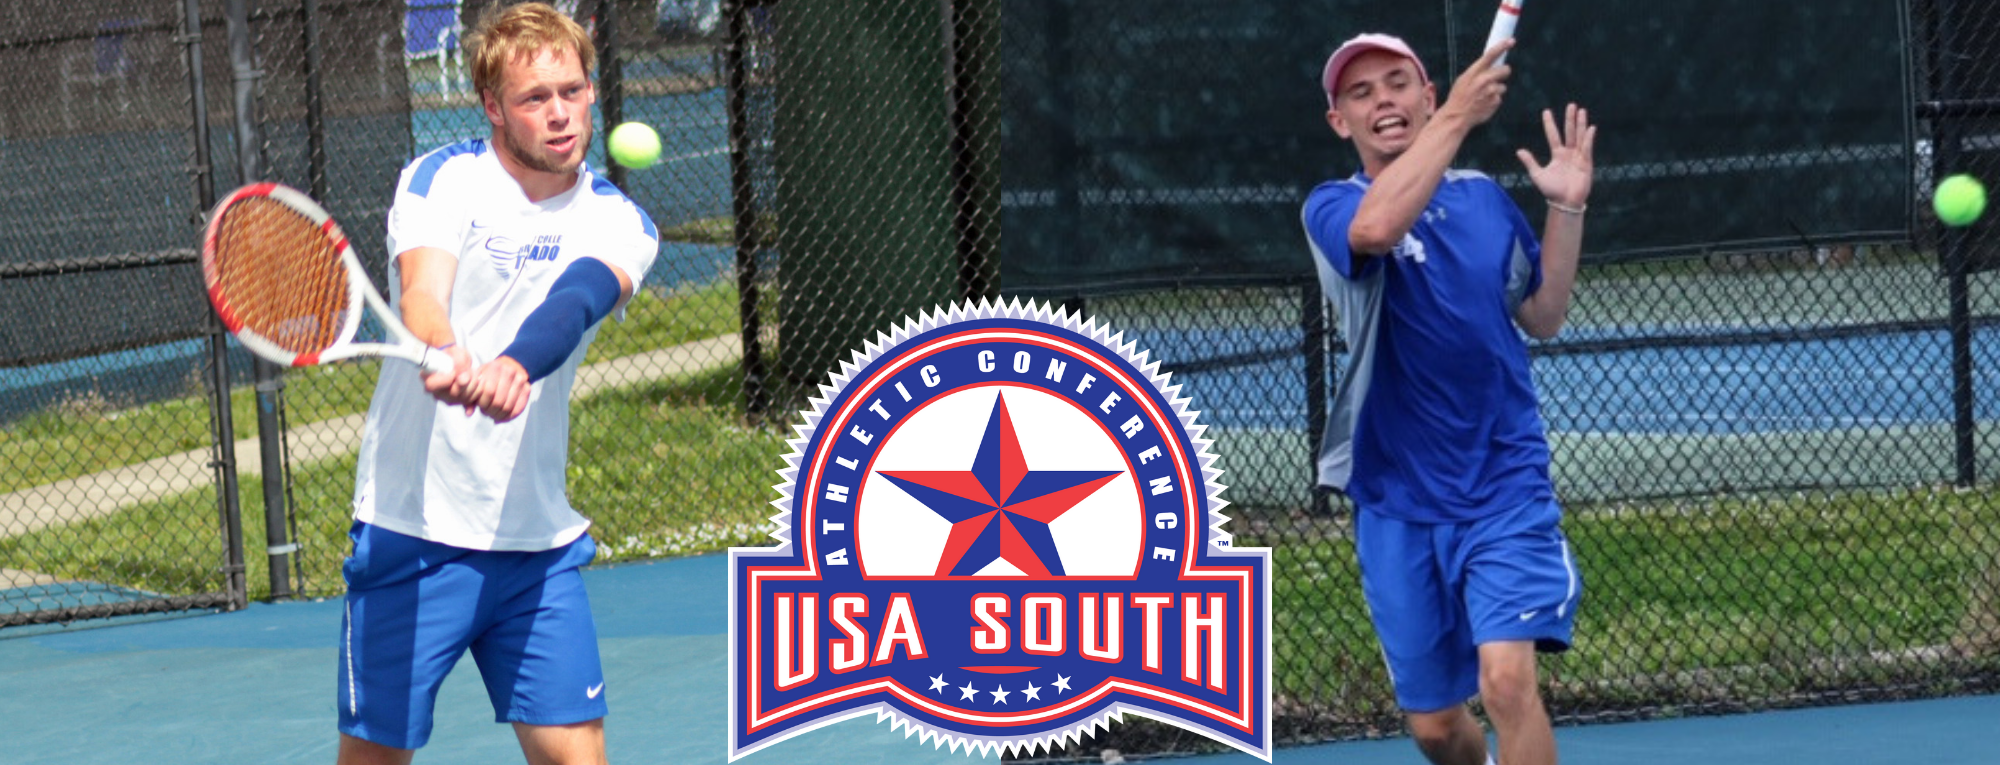 Tim Hengst and Tyler Frazee Sweep USA South Men's Tennis Weekly Awards